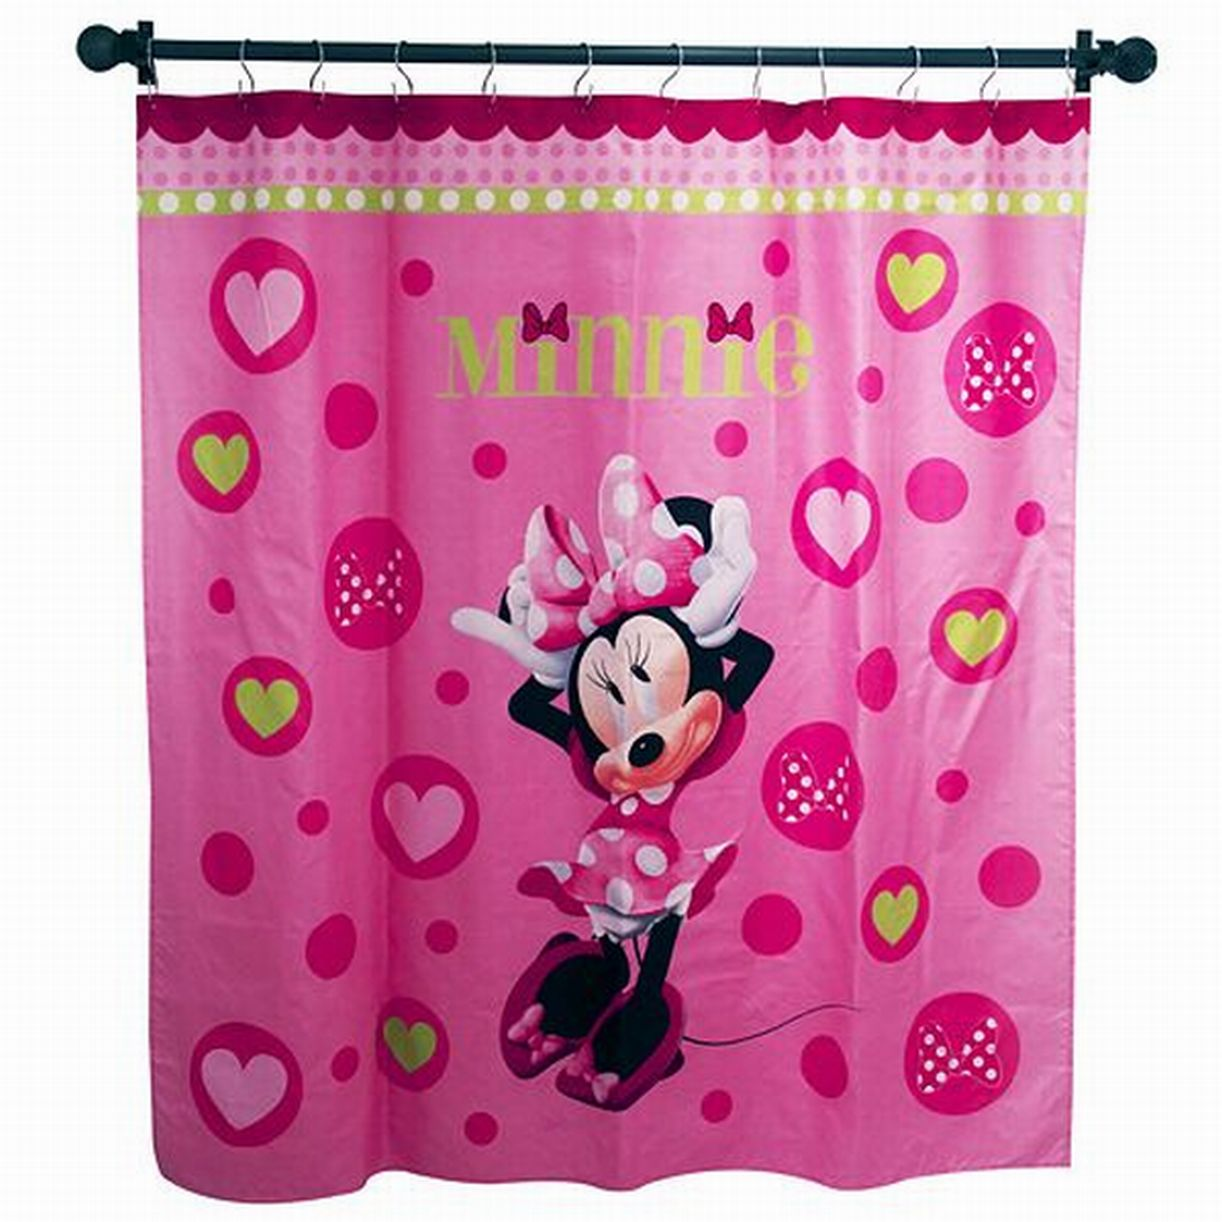 Disney Minnie Mouse Pink Hearts Microfiber Shower Curtain Kids Bath